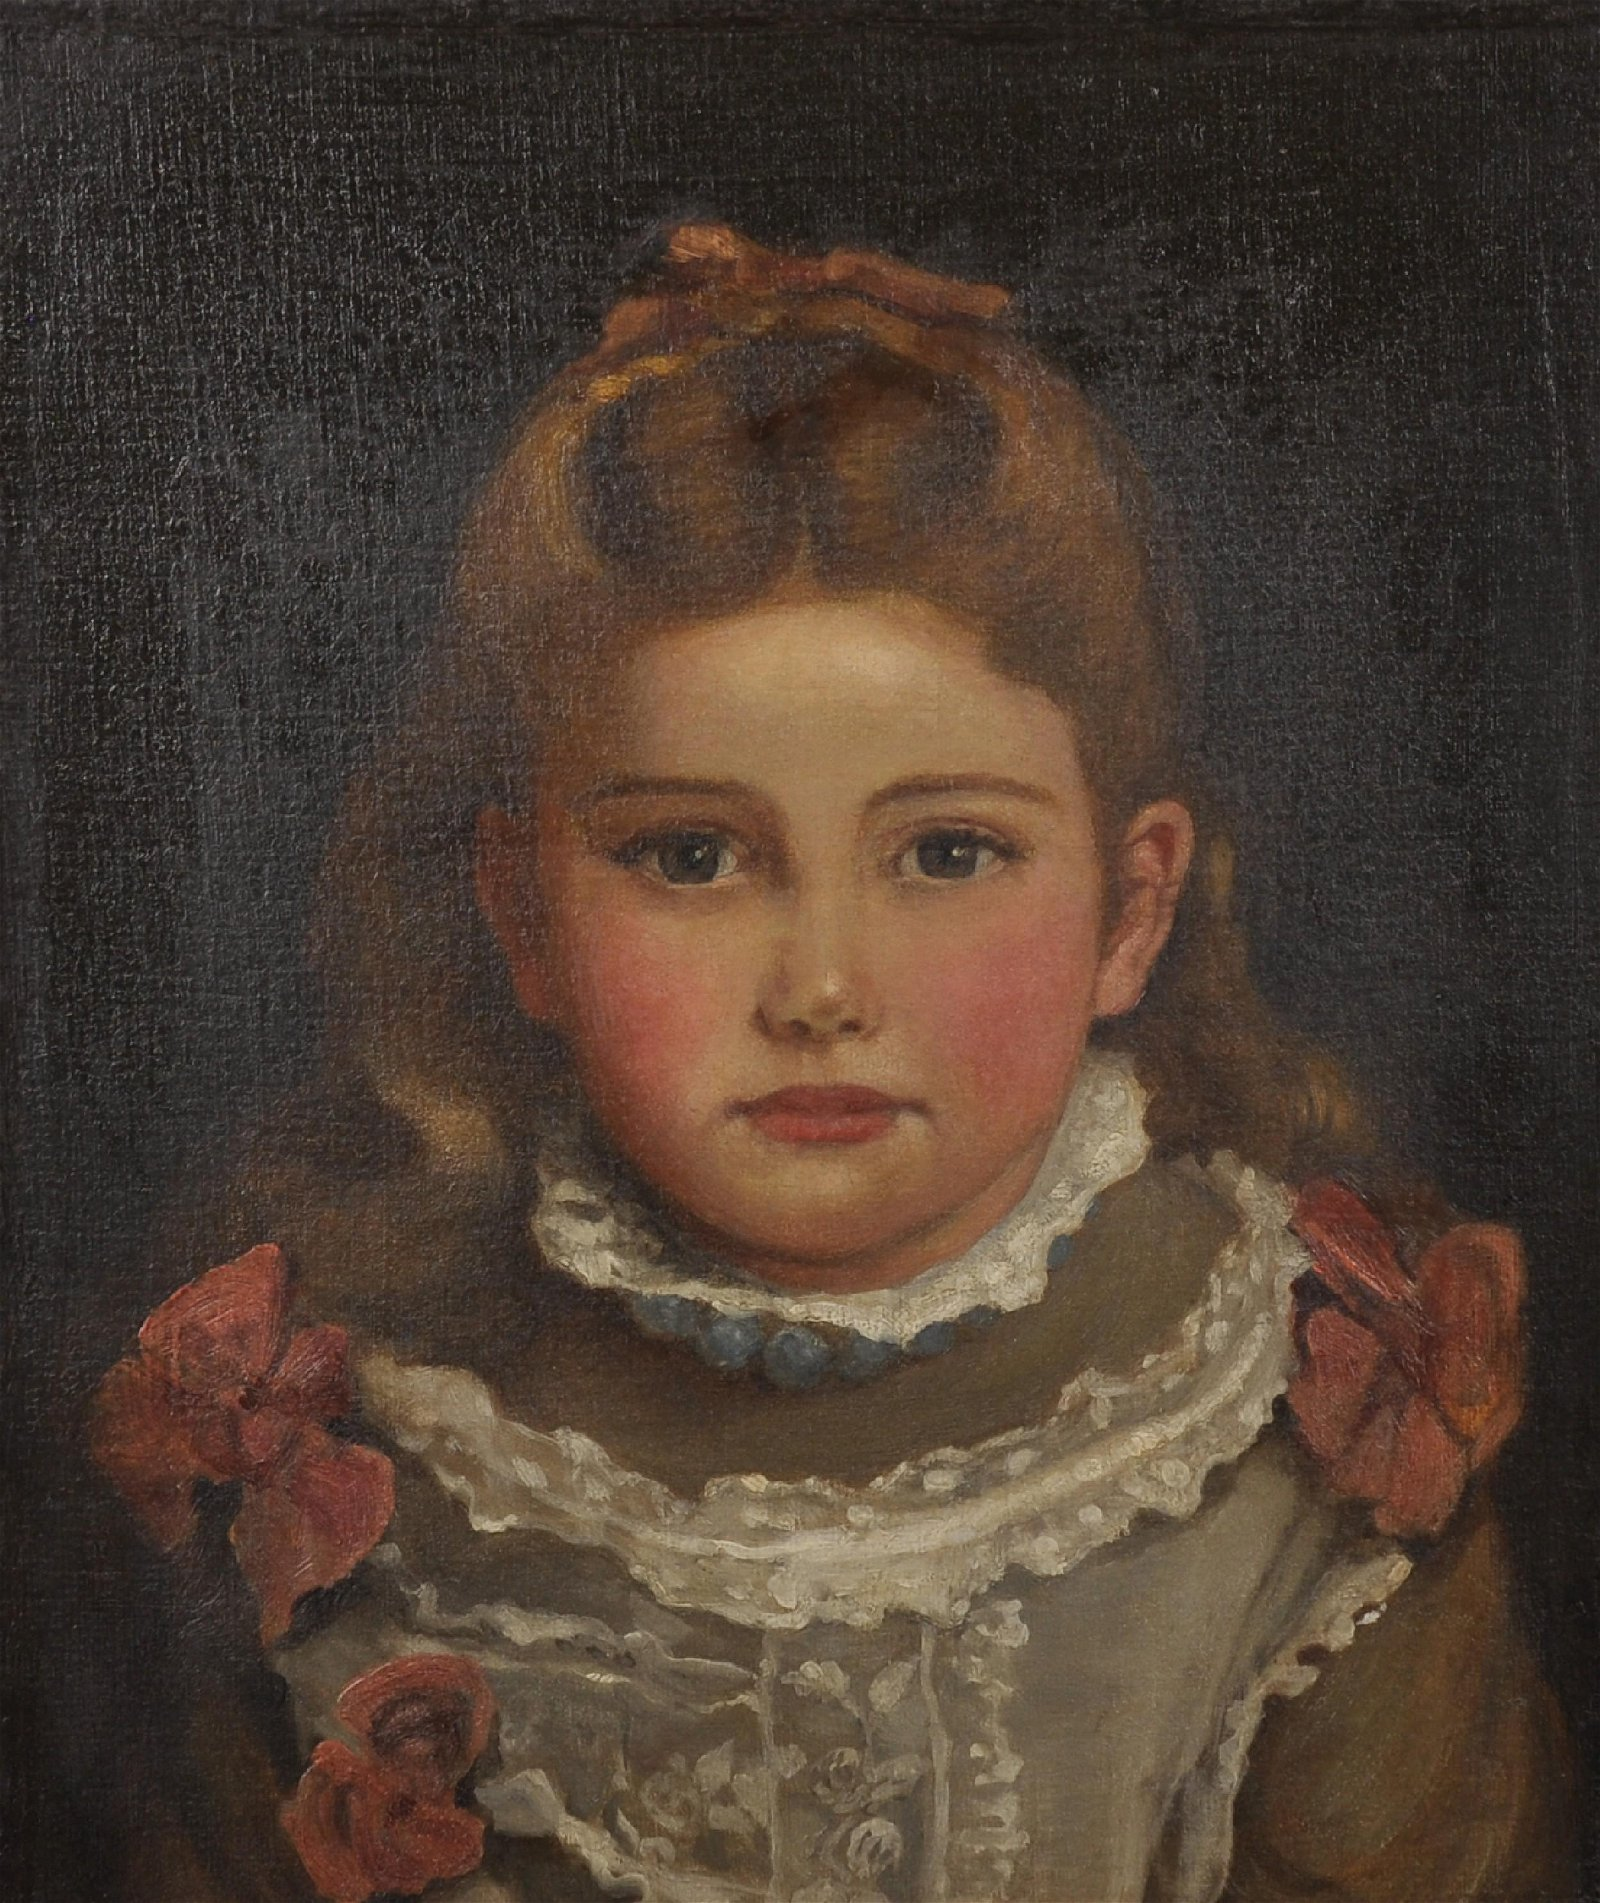 Late 19th Century English School. A Portrait of a Young